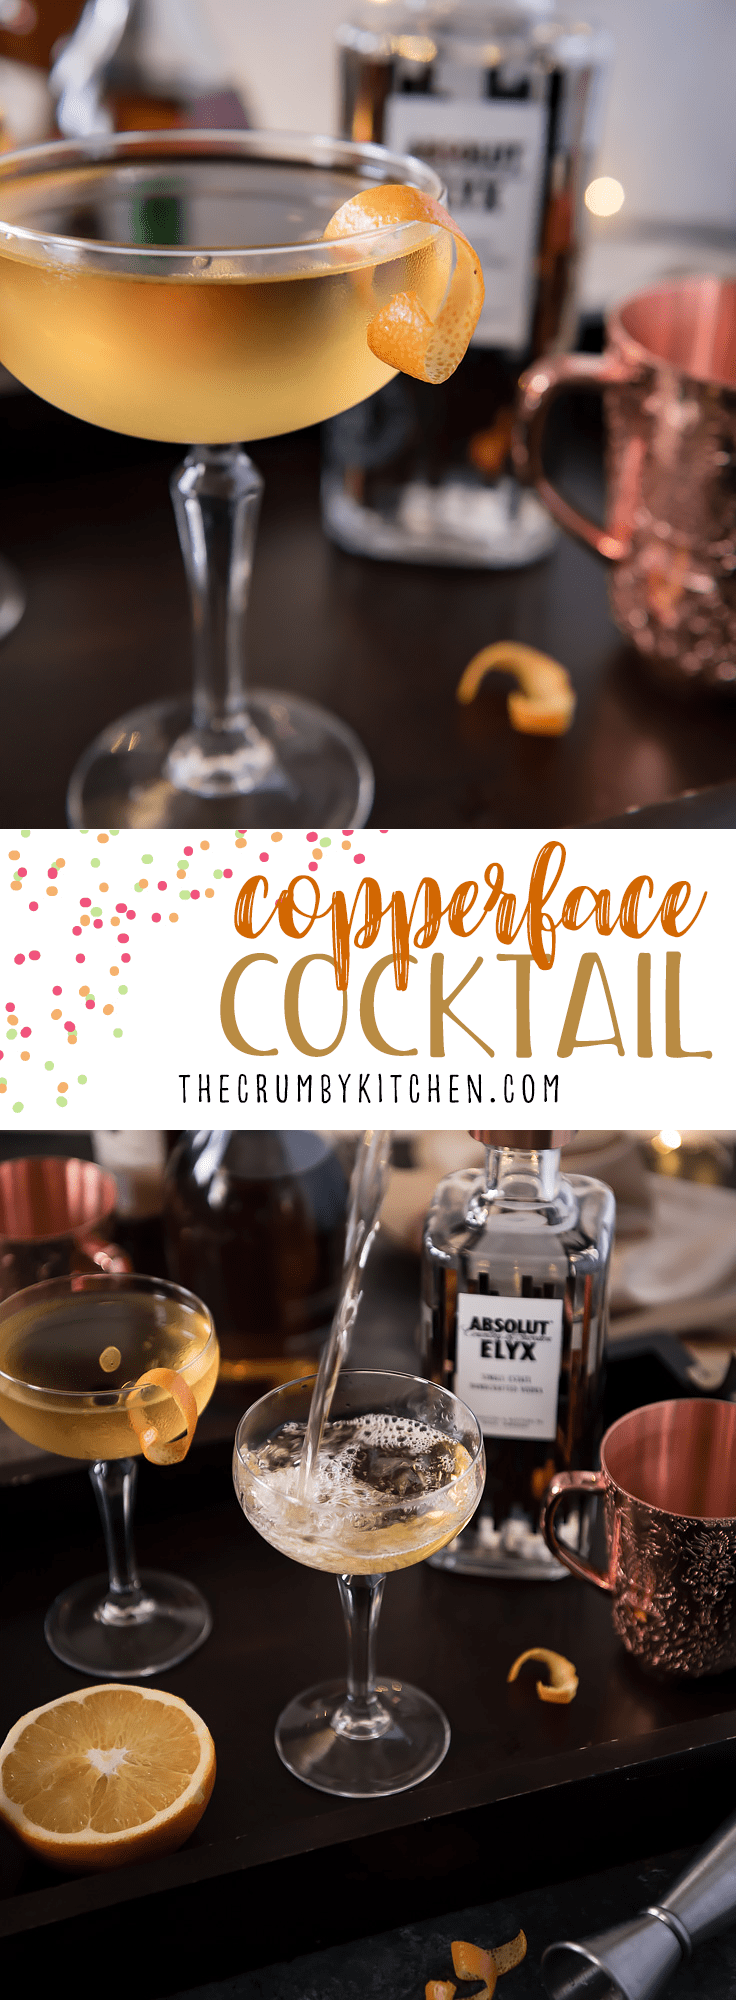 Simple in preparation but complex in flavor, the Copperface Cocktail combines Absolut Elyx with Calvados and apricot brandy for a sipper that is sure to keep everyone warm this winter!